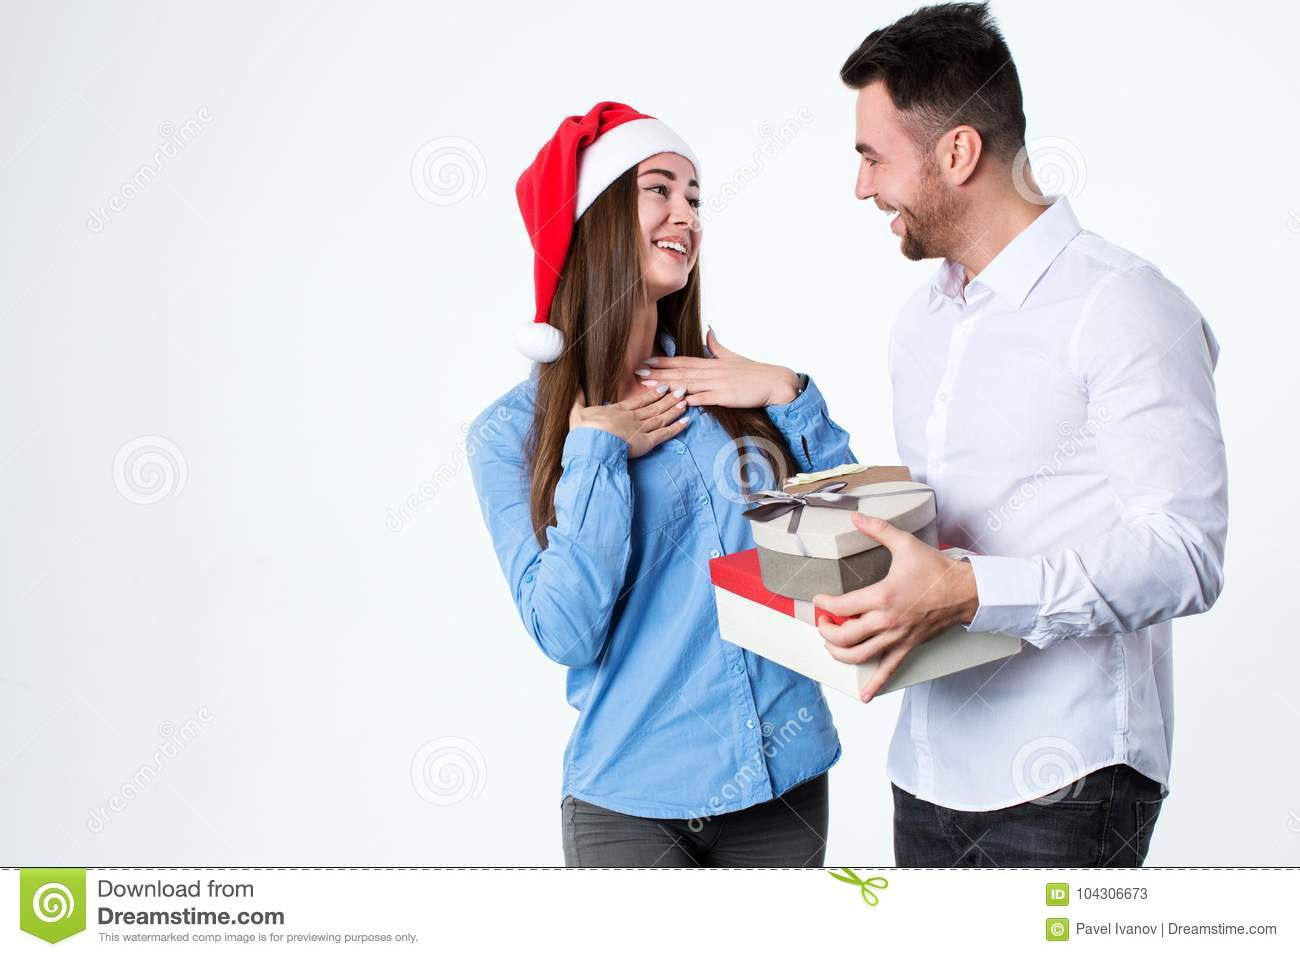 What to give young 7